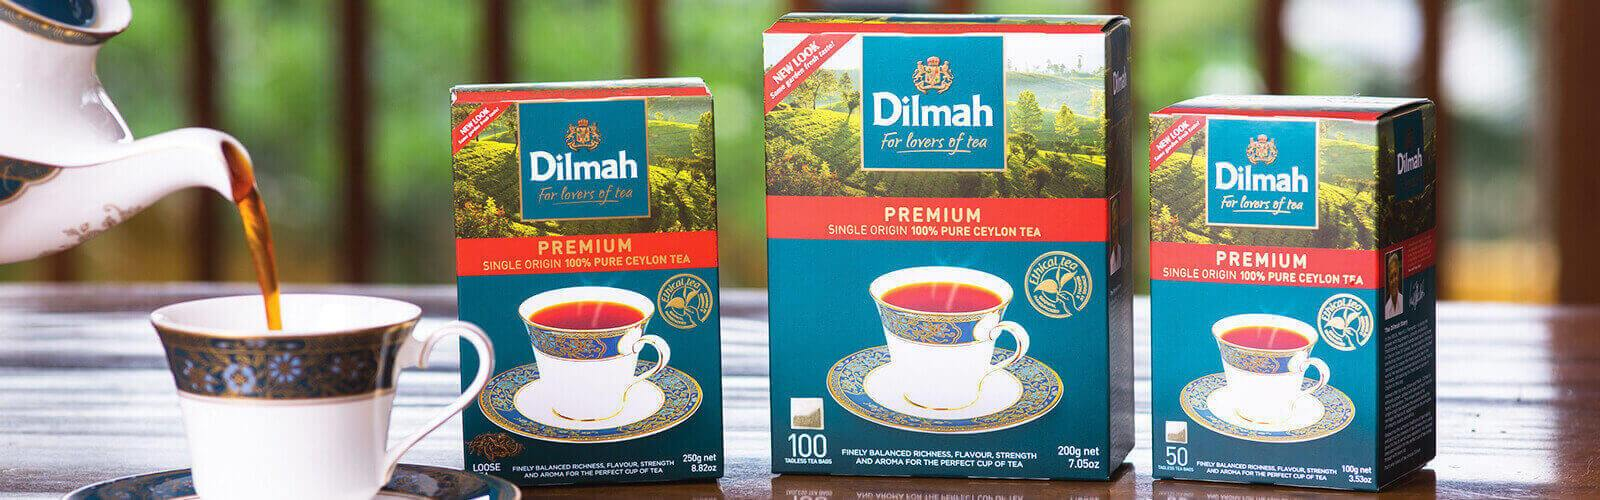 Dilmah Tea Inspired